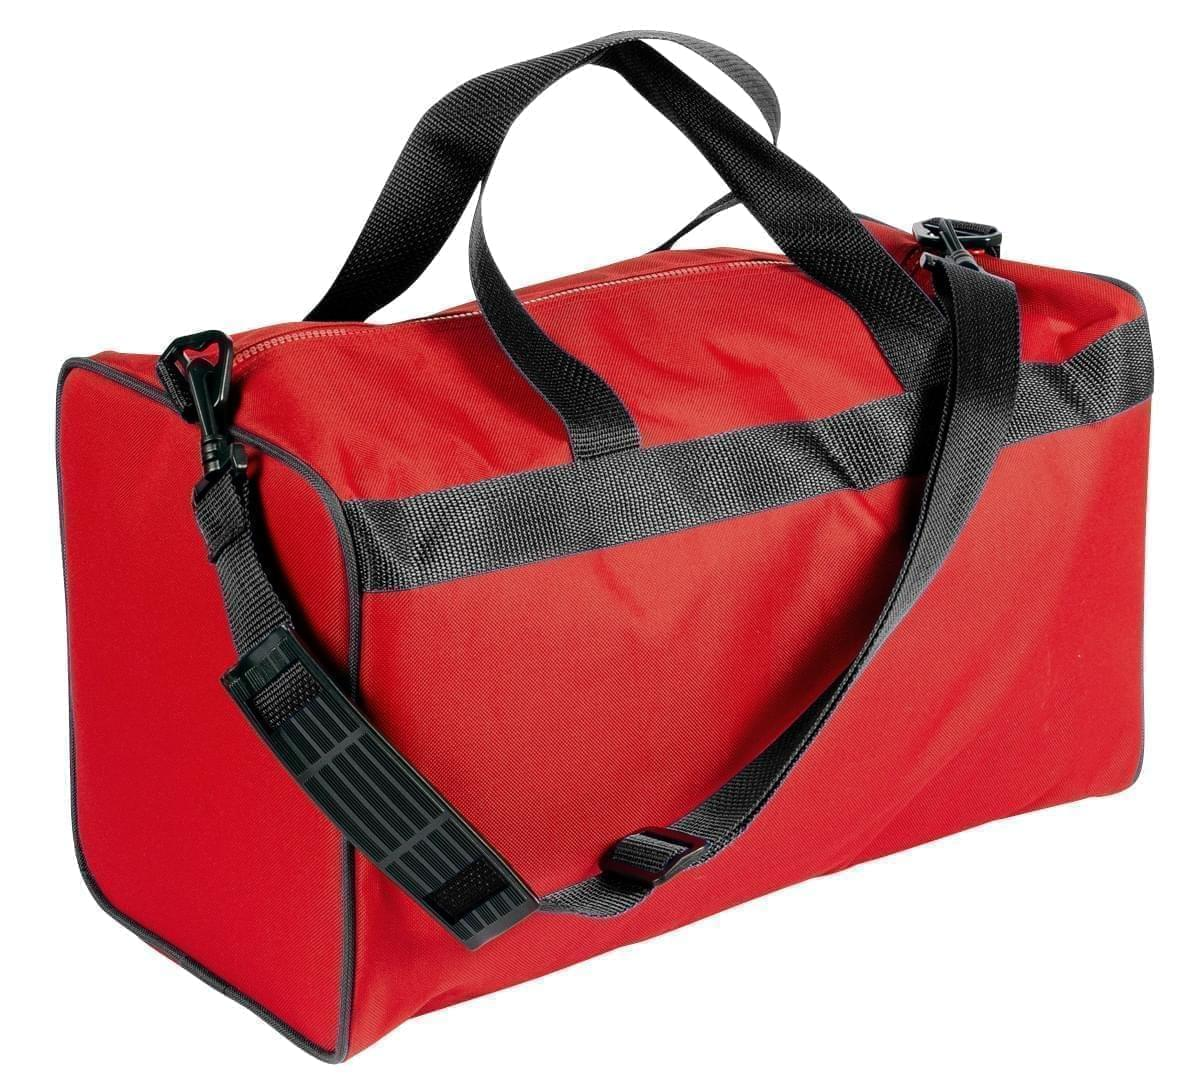 USA Made Nylon Poly Weekend Duffles, Red-Black, WLKX31AAZR